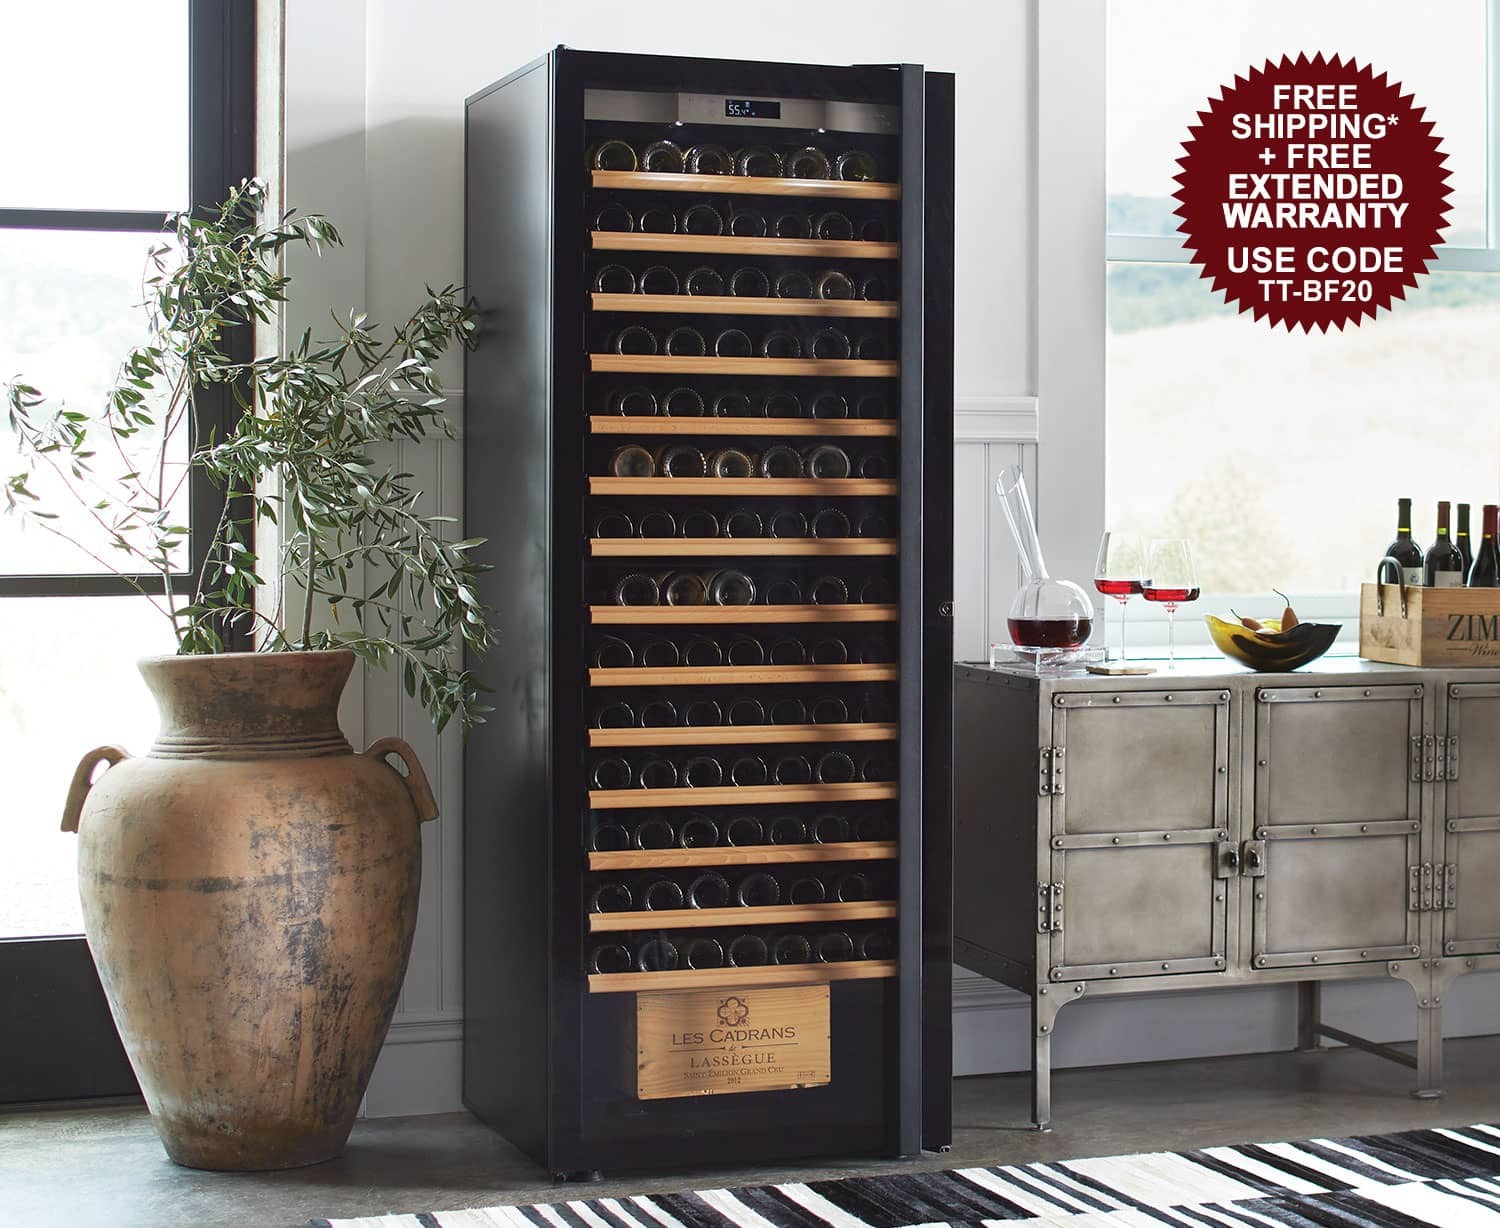 Transtherm Wine Cabinets - Free 3-Year Extended Warranty + Free Ground Shipping - Use Code TT-BF20